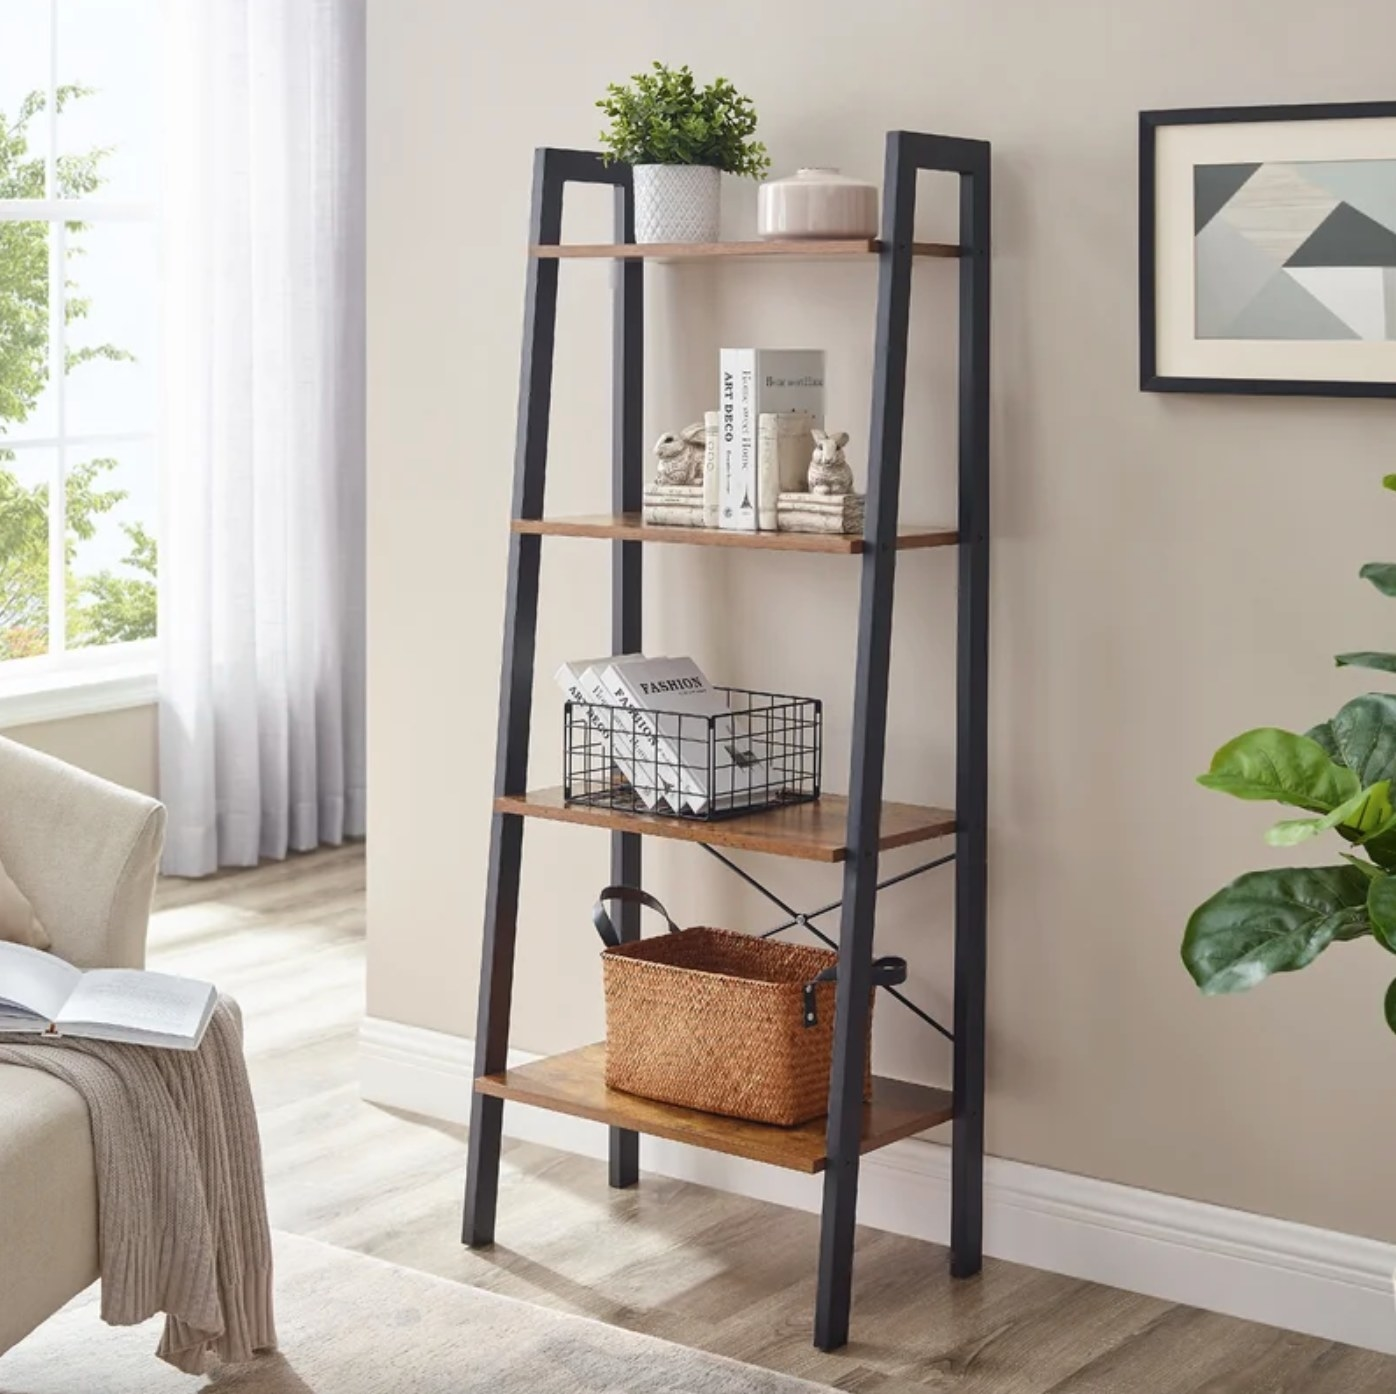 The steel bookcase with wood shelves holding a basket of books and a plant